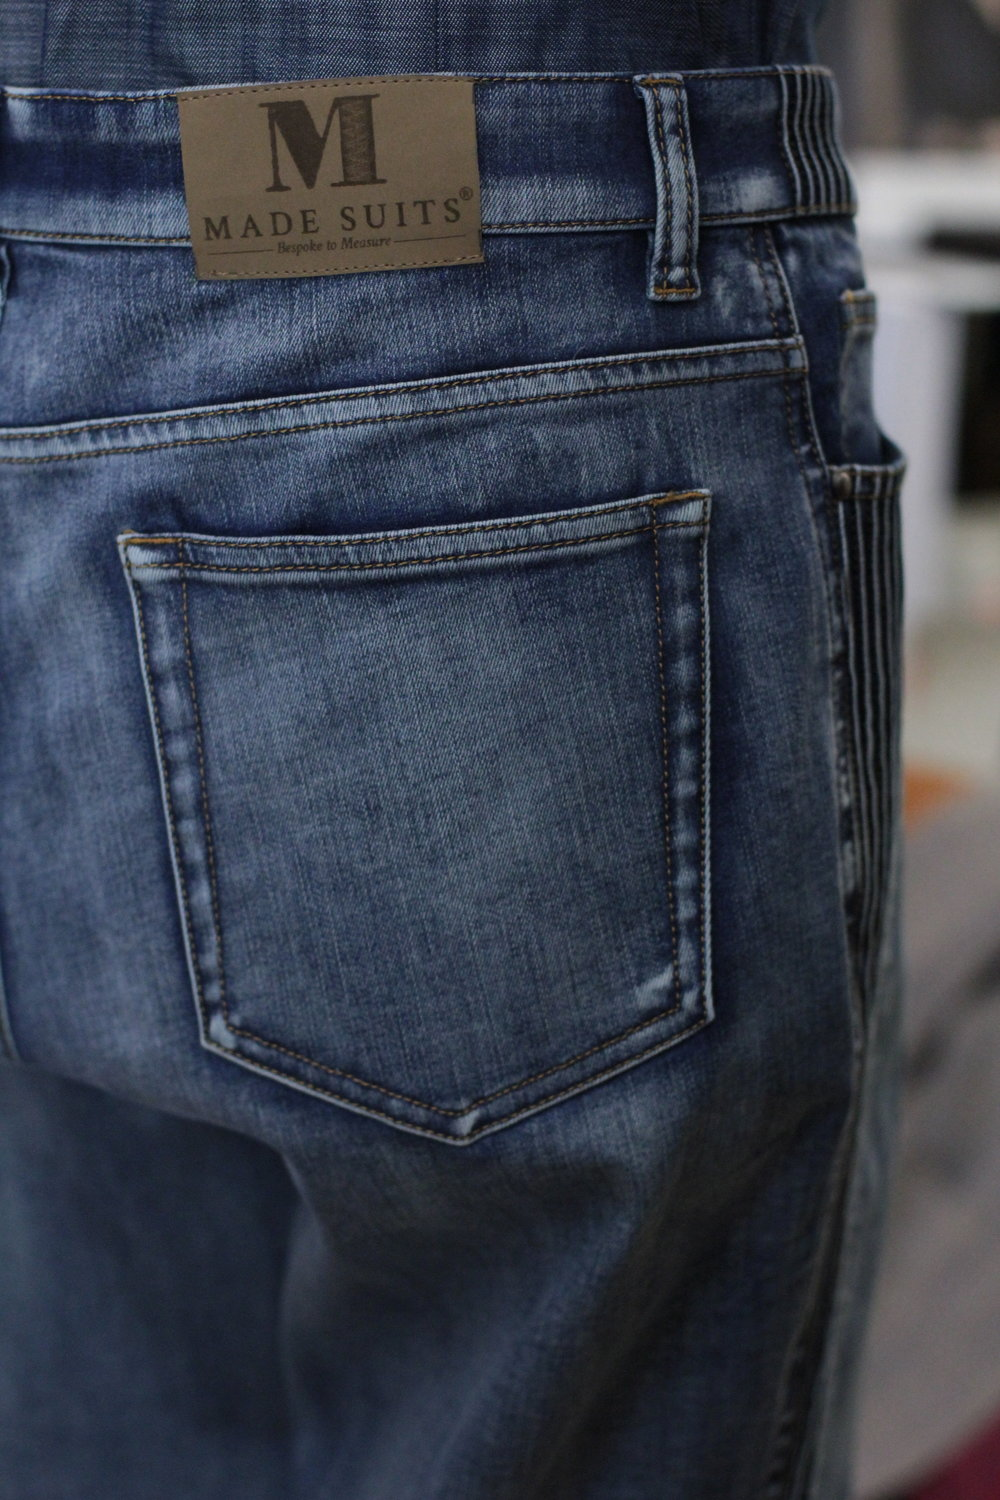 Made Suits | Made Denim | Tailor Made Suits Singapore | Denim jeans Singapore | Bespoke HST Denim Jeans | Denim Jeans Bespoke Denim Jeans